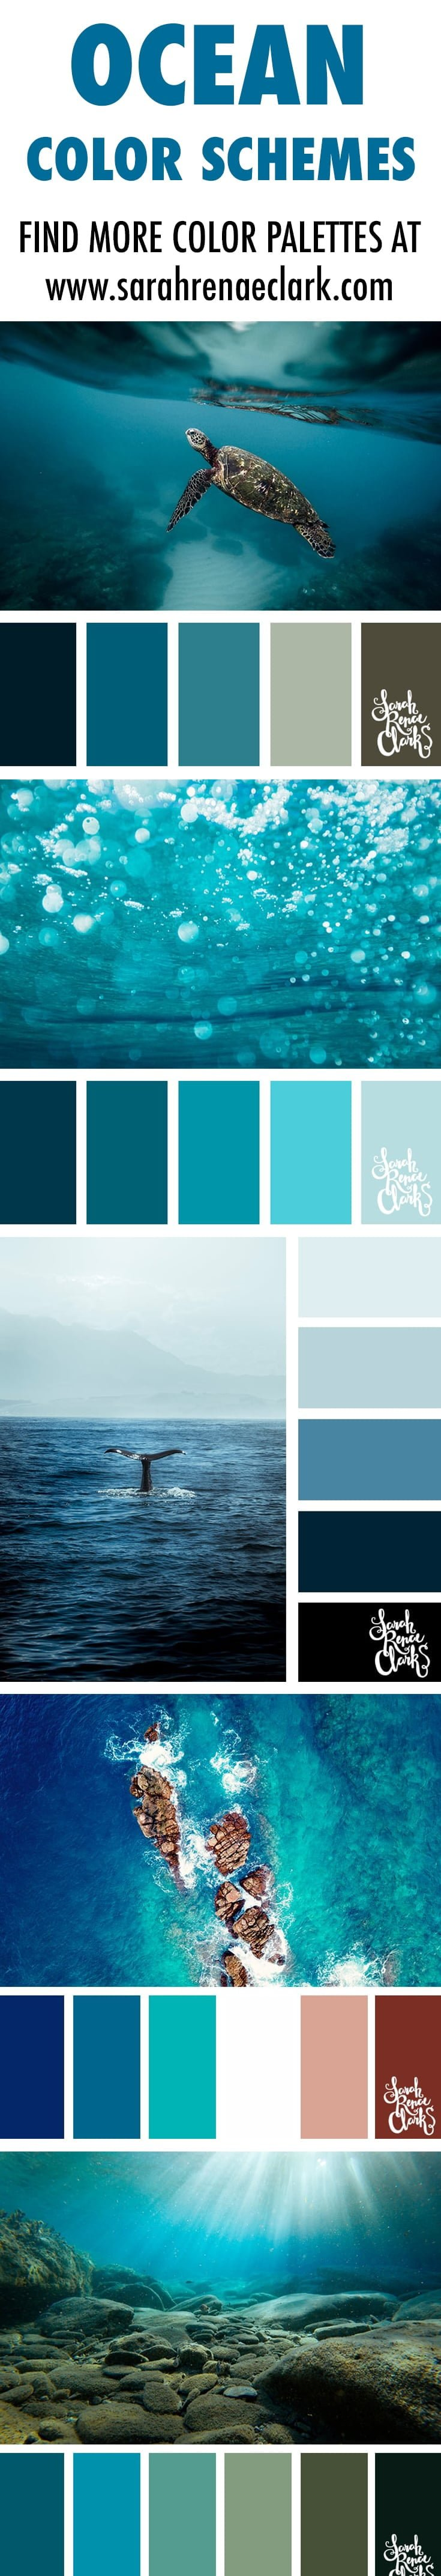 ocean color schemes, color inspiration, color palettes